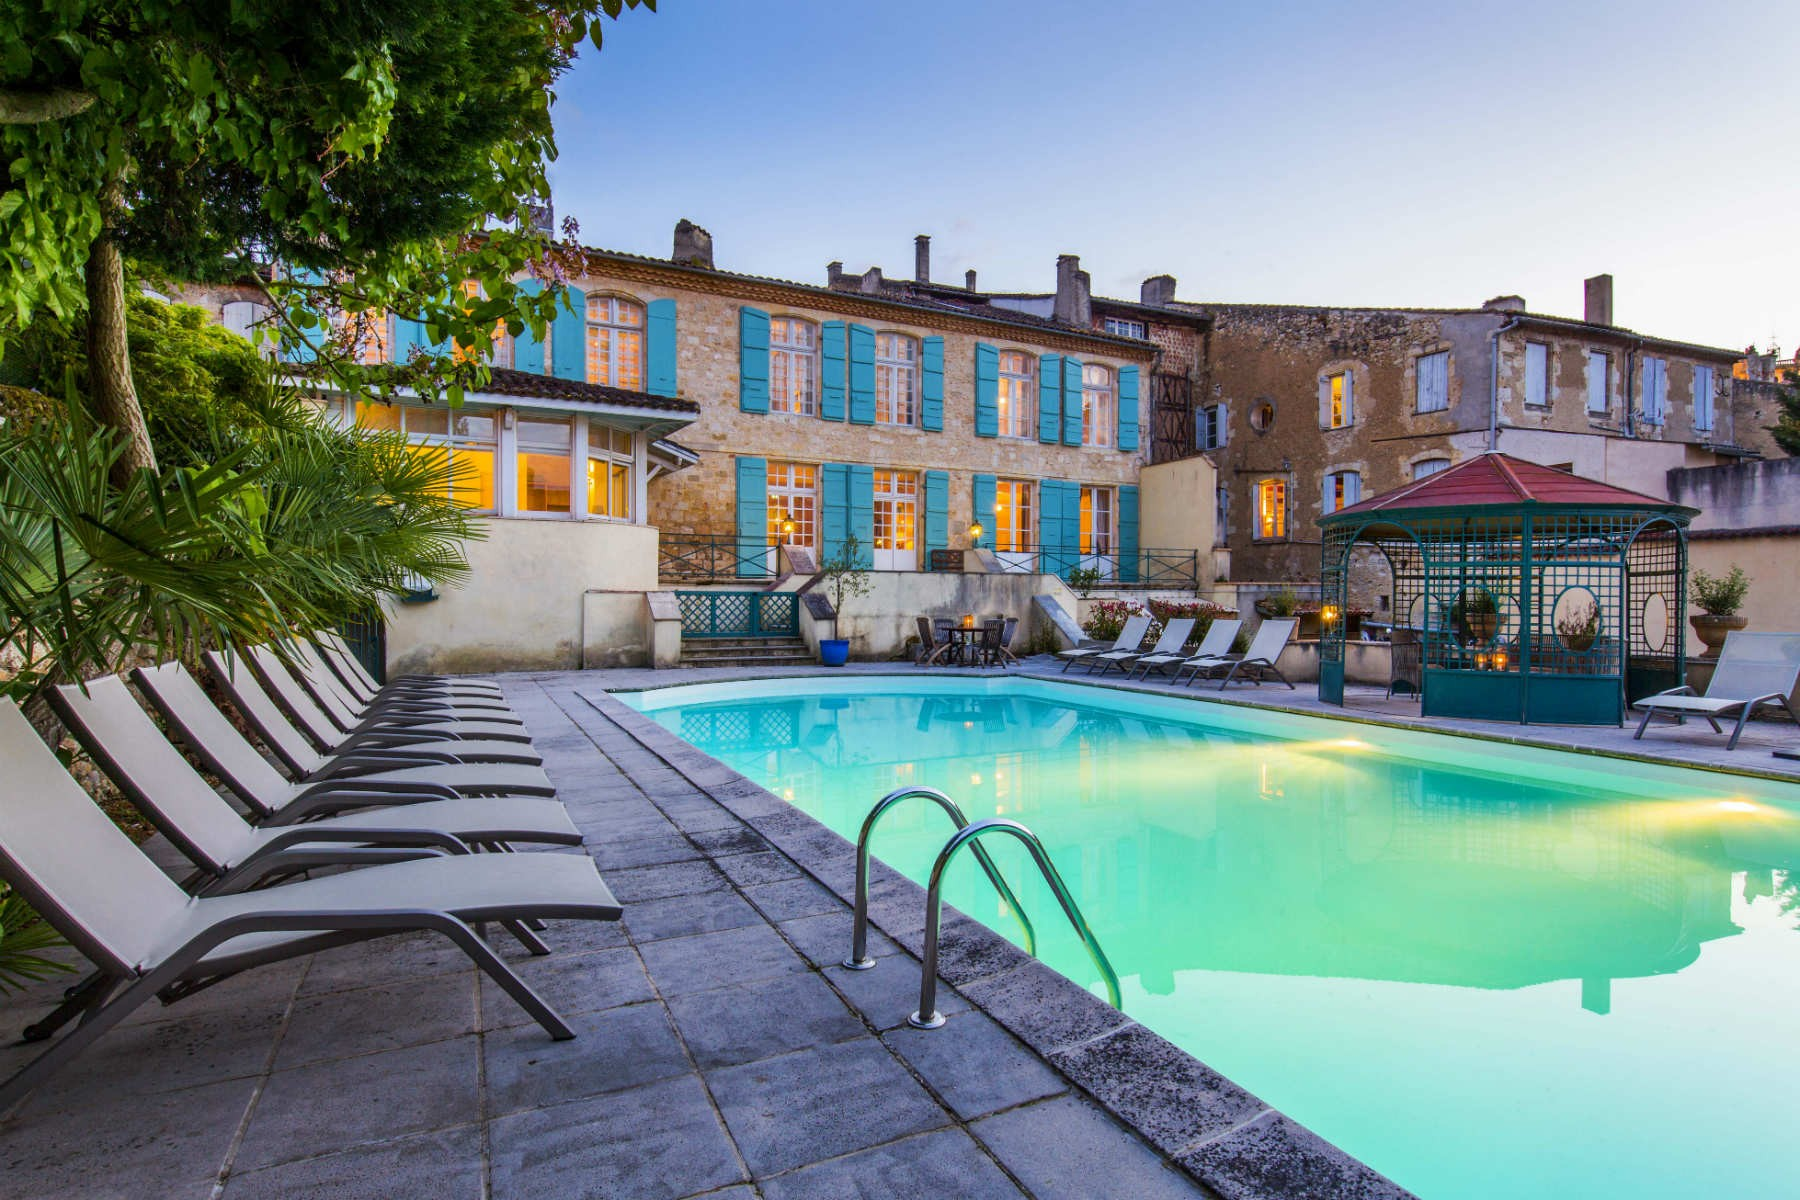 Beaux villages immobilier south west france beautiful for Village vacances gers avec piscine